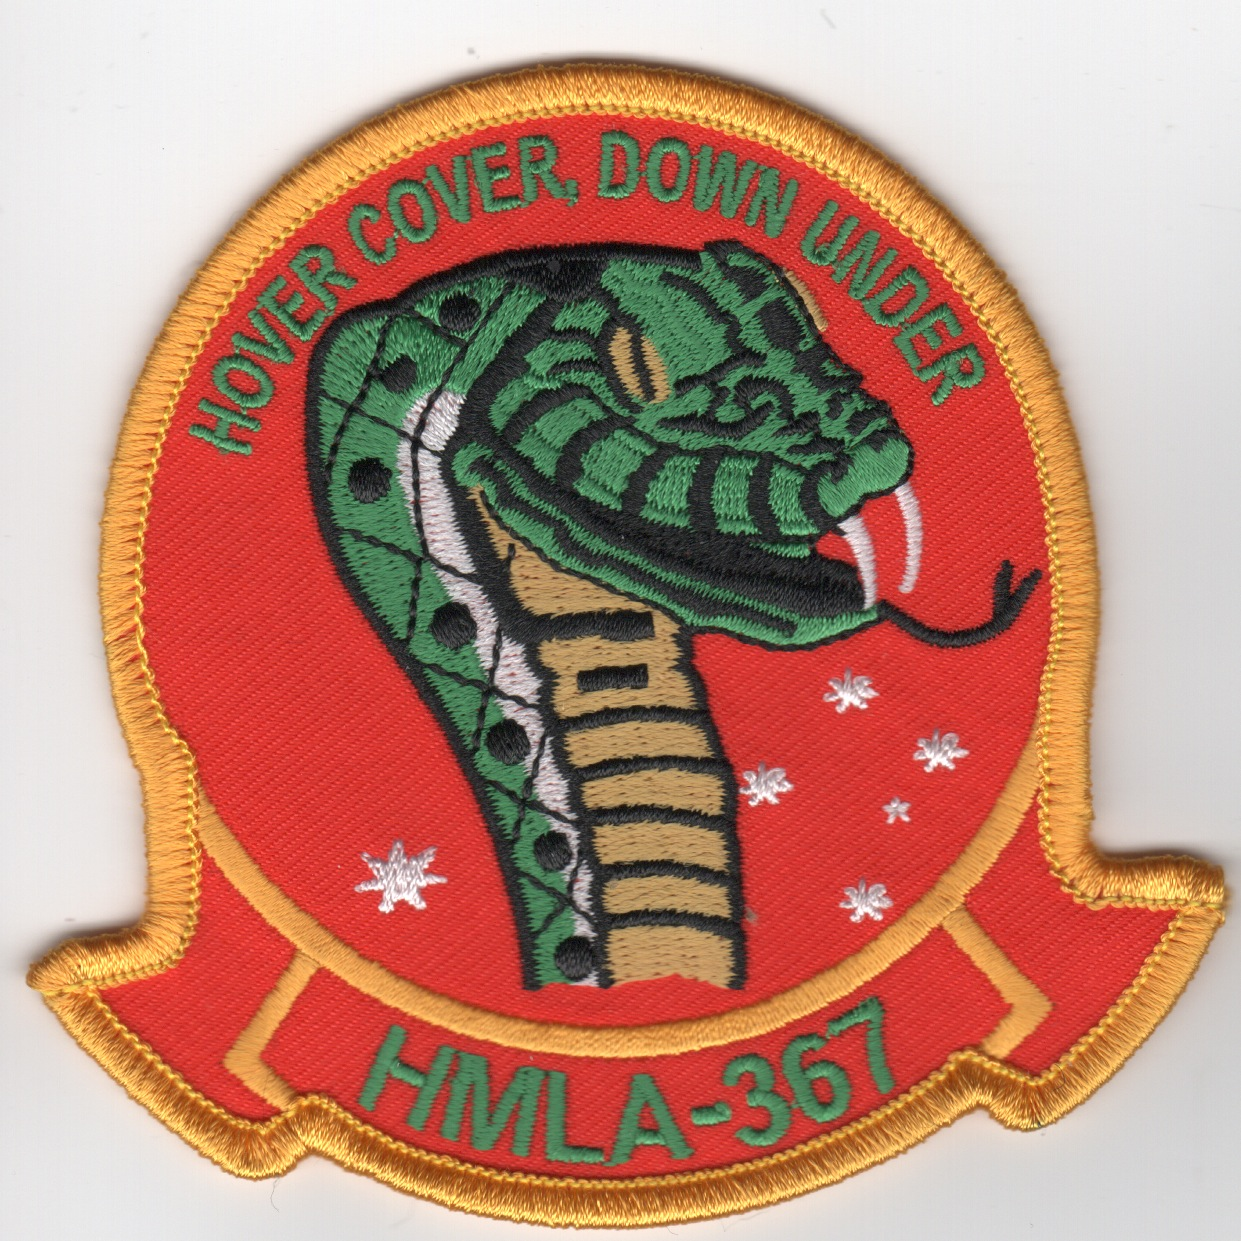 HMLA-367 'Hover Cover, Down Under' (Red)